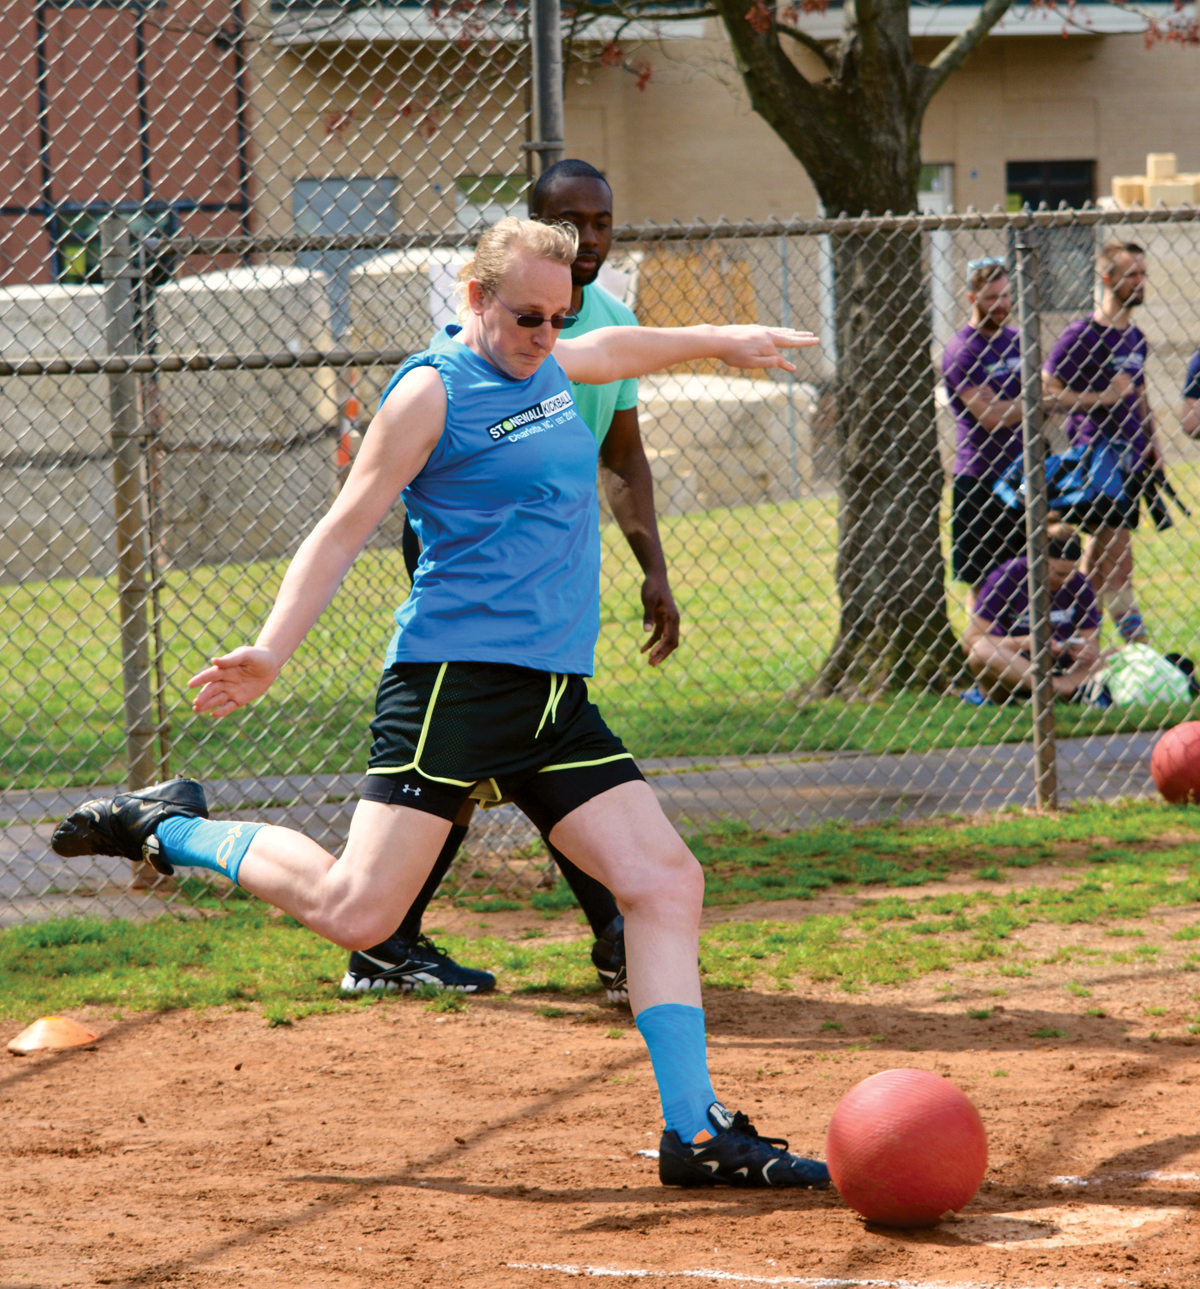 LGBT sports leagues in North Carolina offer competition